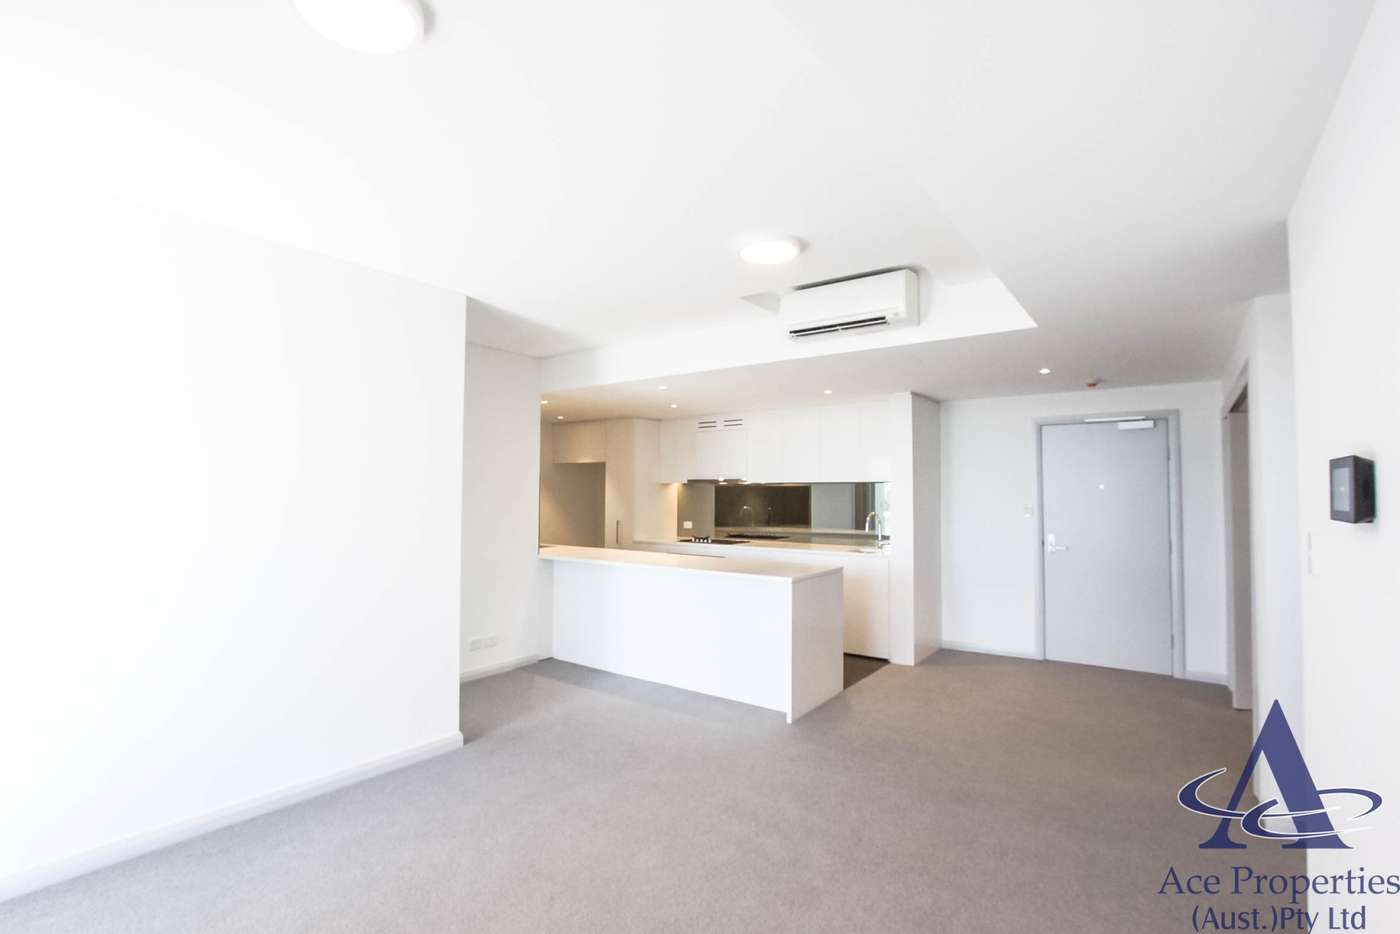 Main view of Homely apartment listing, 57 Hill Road, Wentworth Point NSW 2127